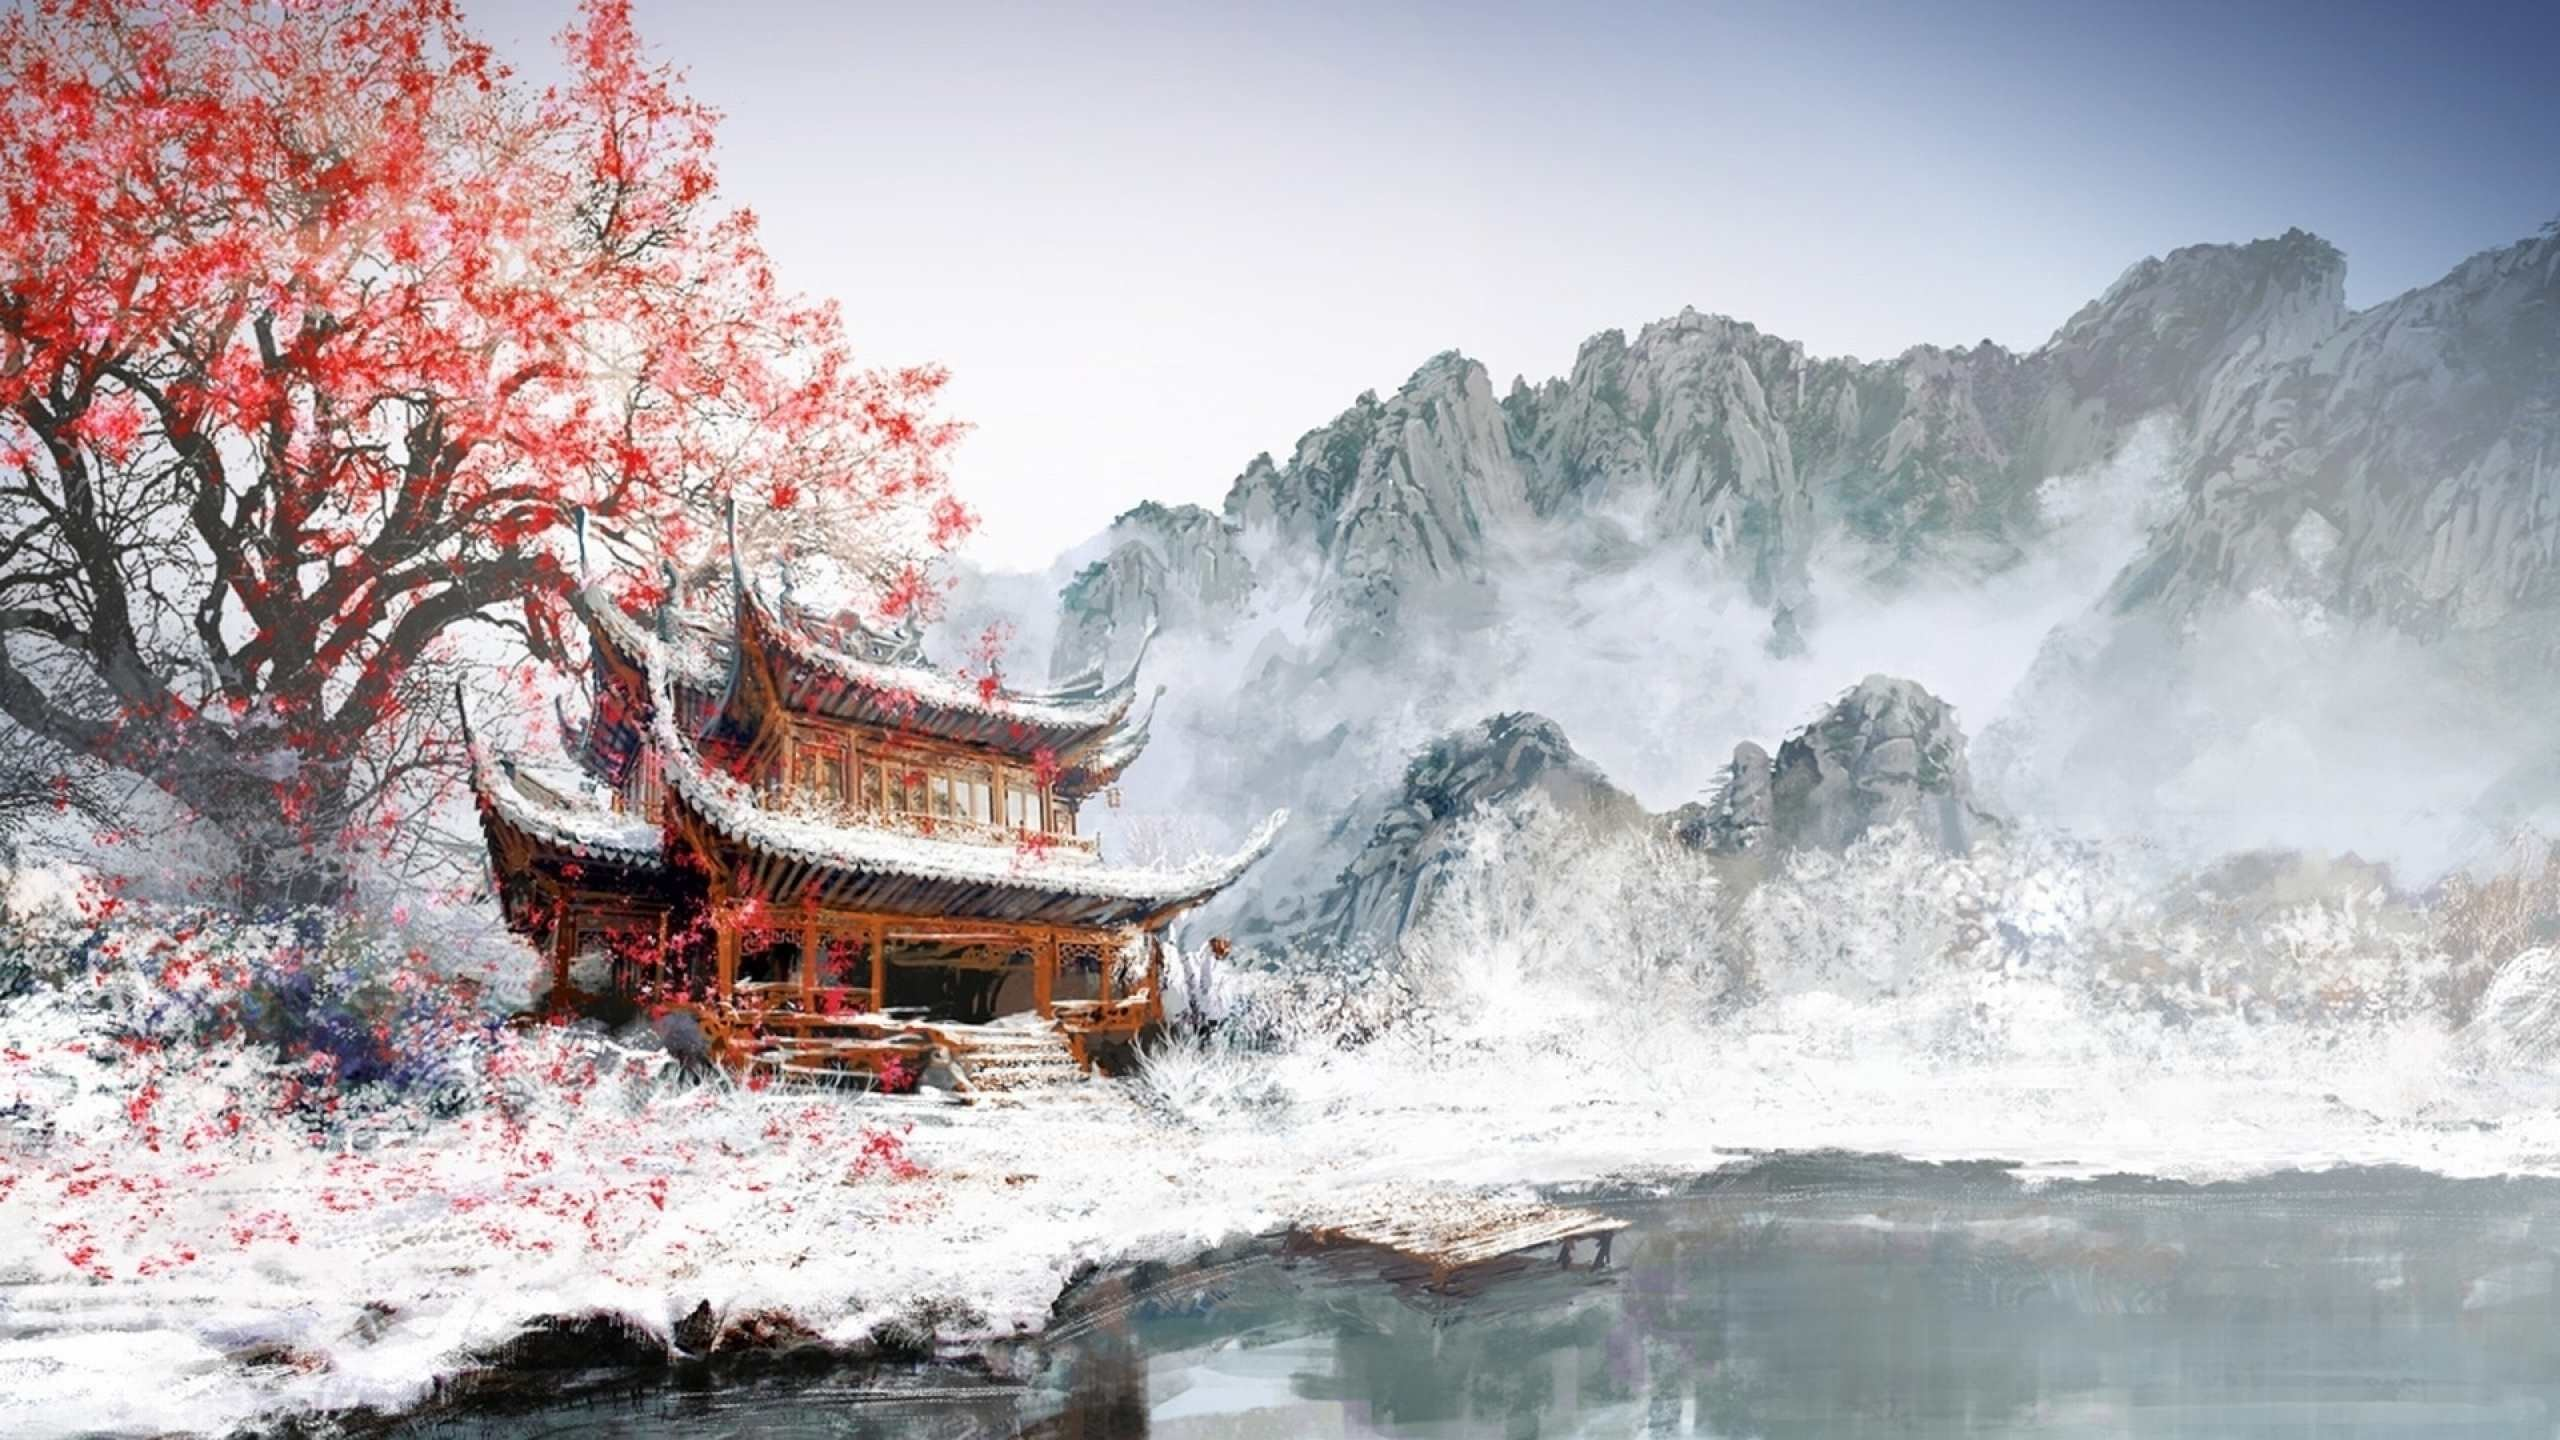 Res: 2560x1440, tomoyea91698 images japanese wallpaper of japanese art 20 HD .